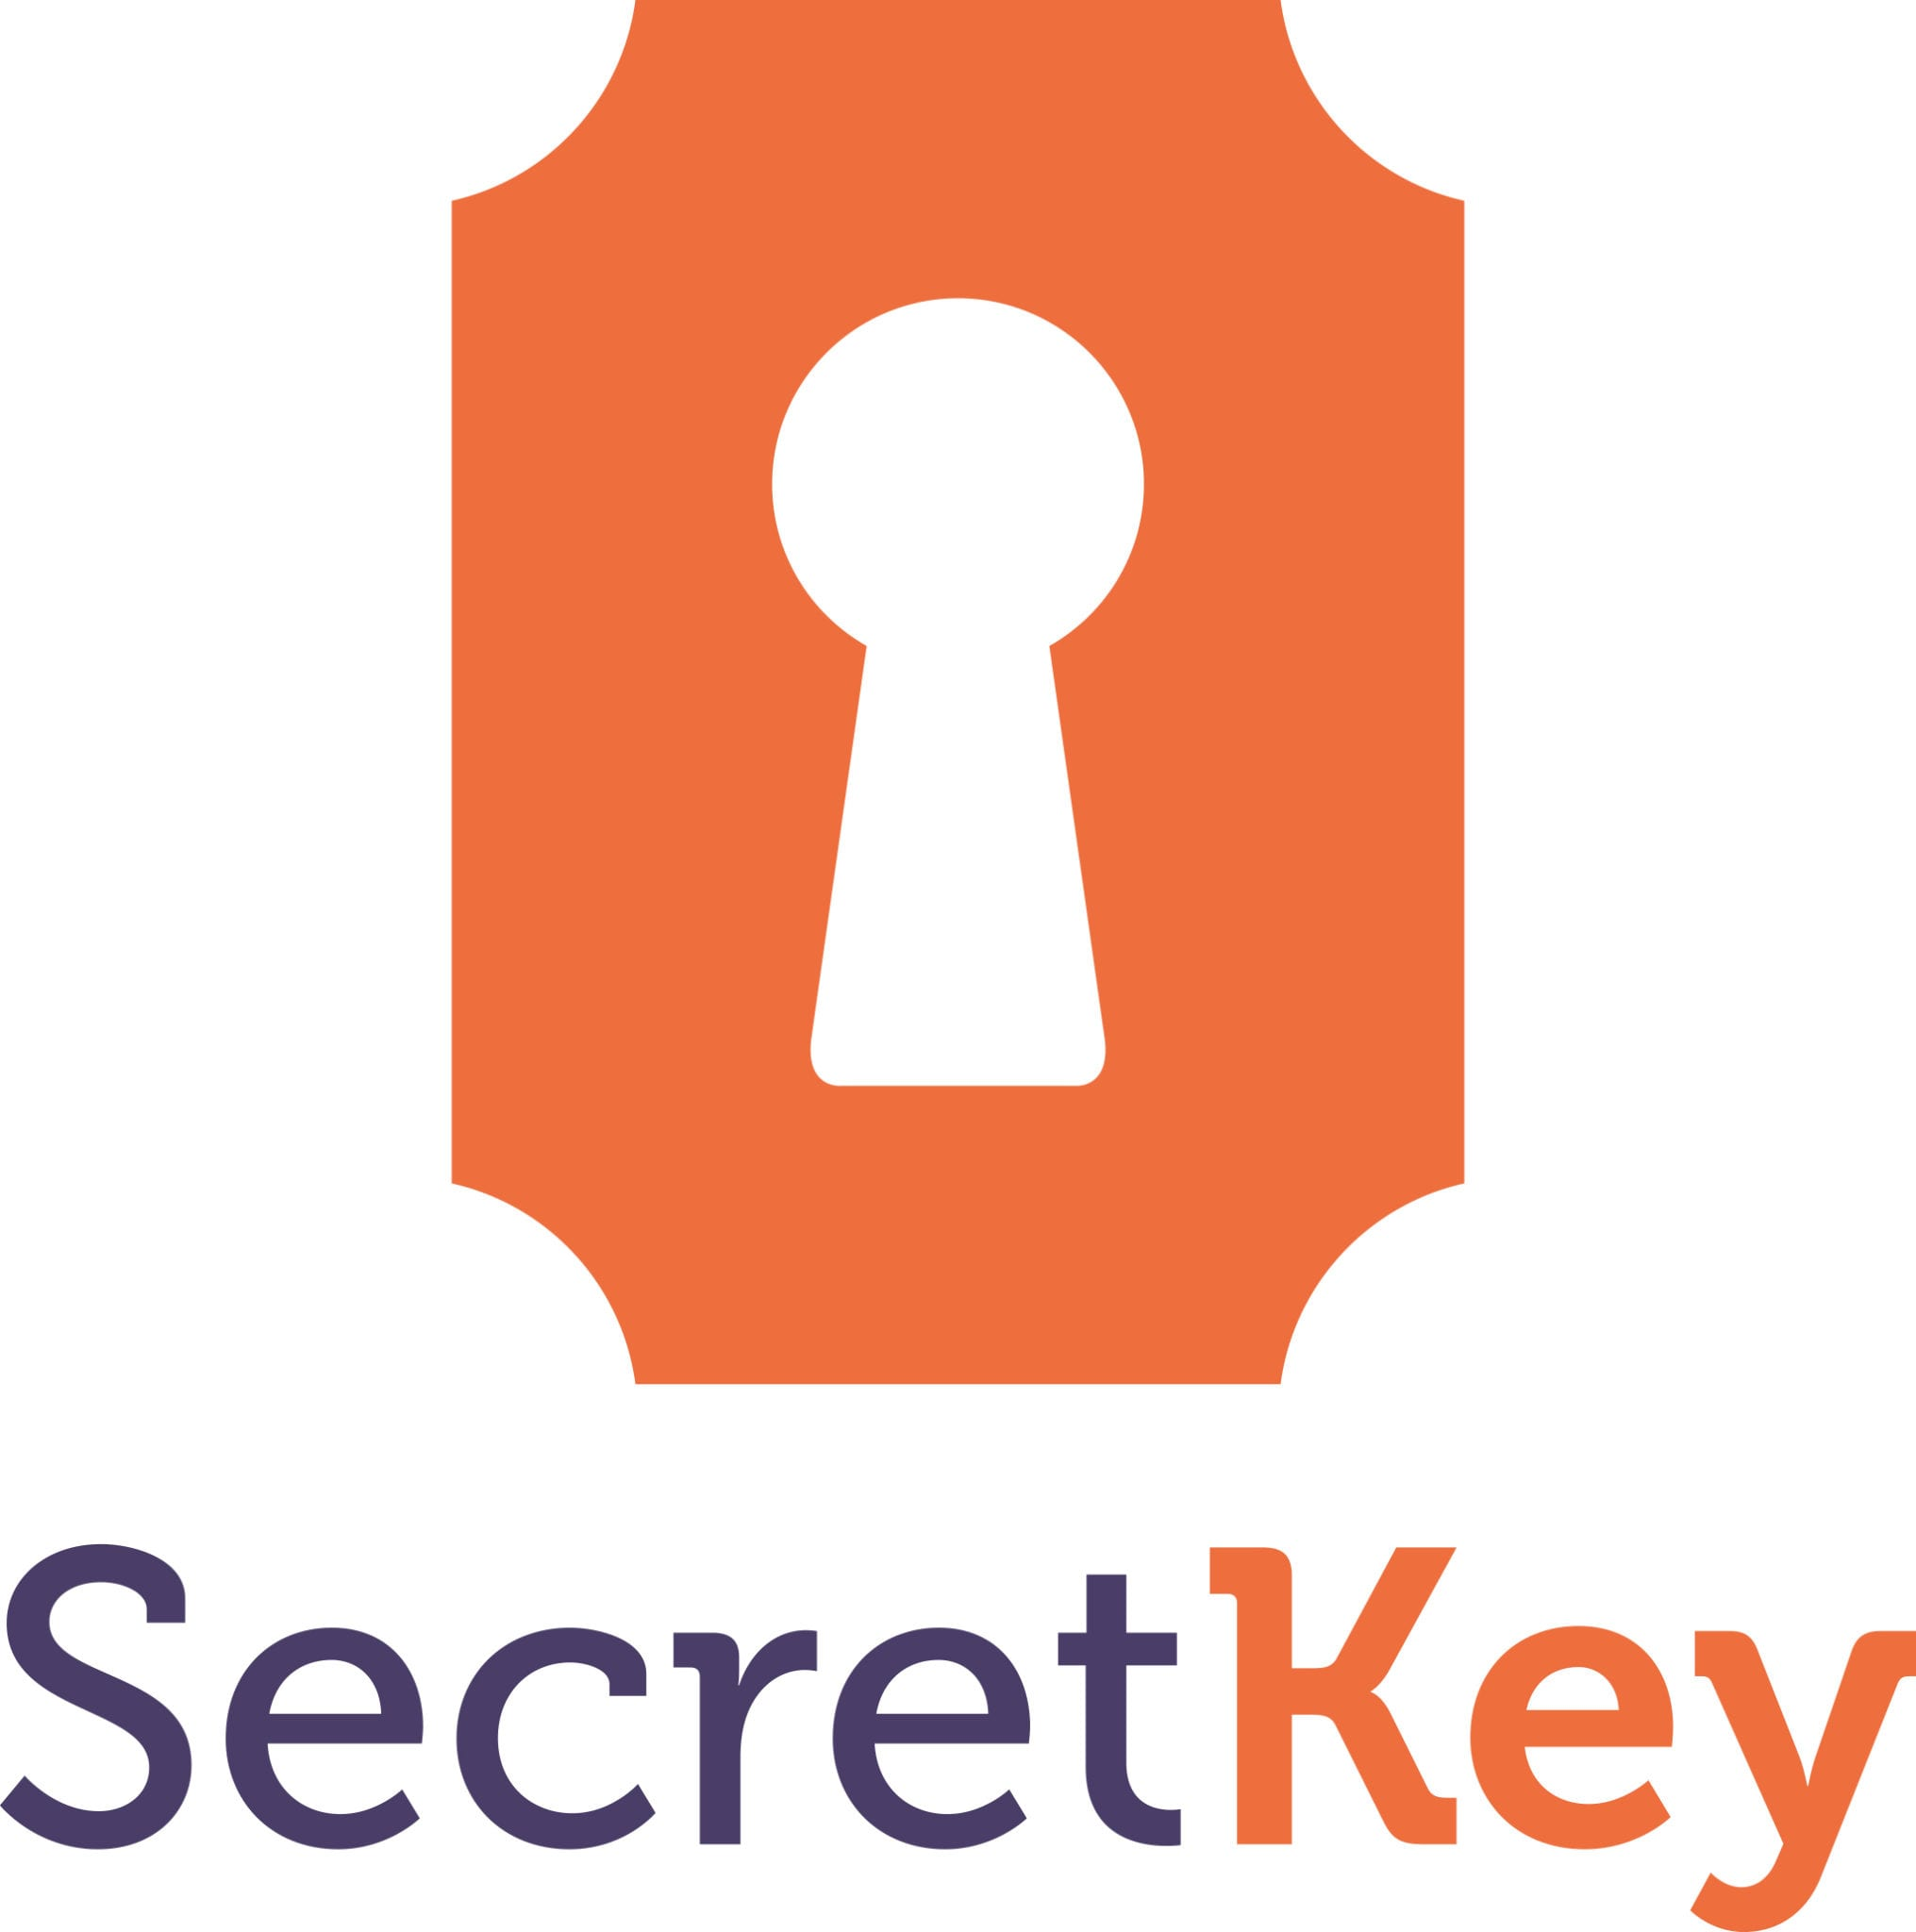 Secret Key web agency logo